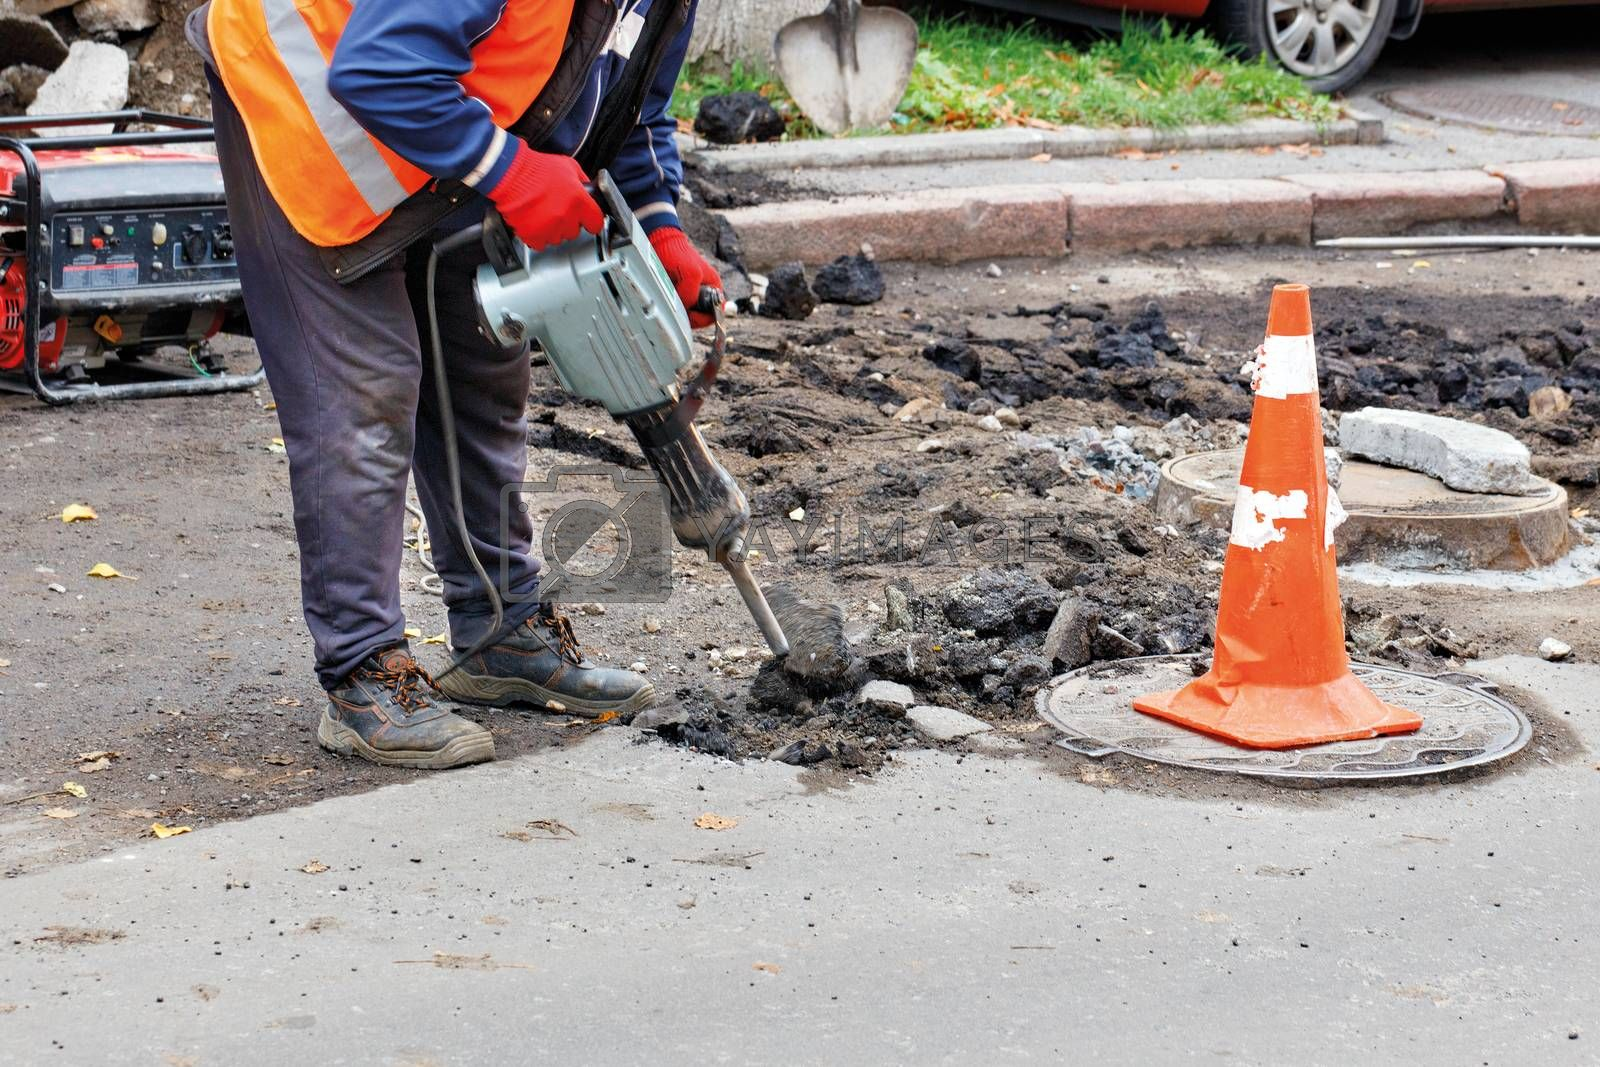 A road worker in reflective clothing breaks old asphalt off the road with an electric jackhammer.